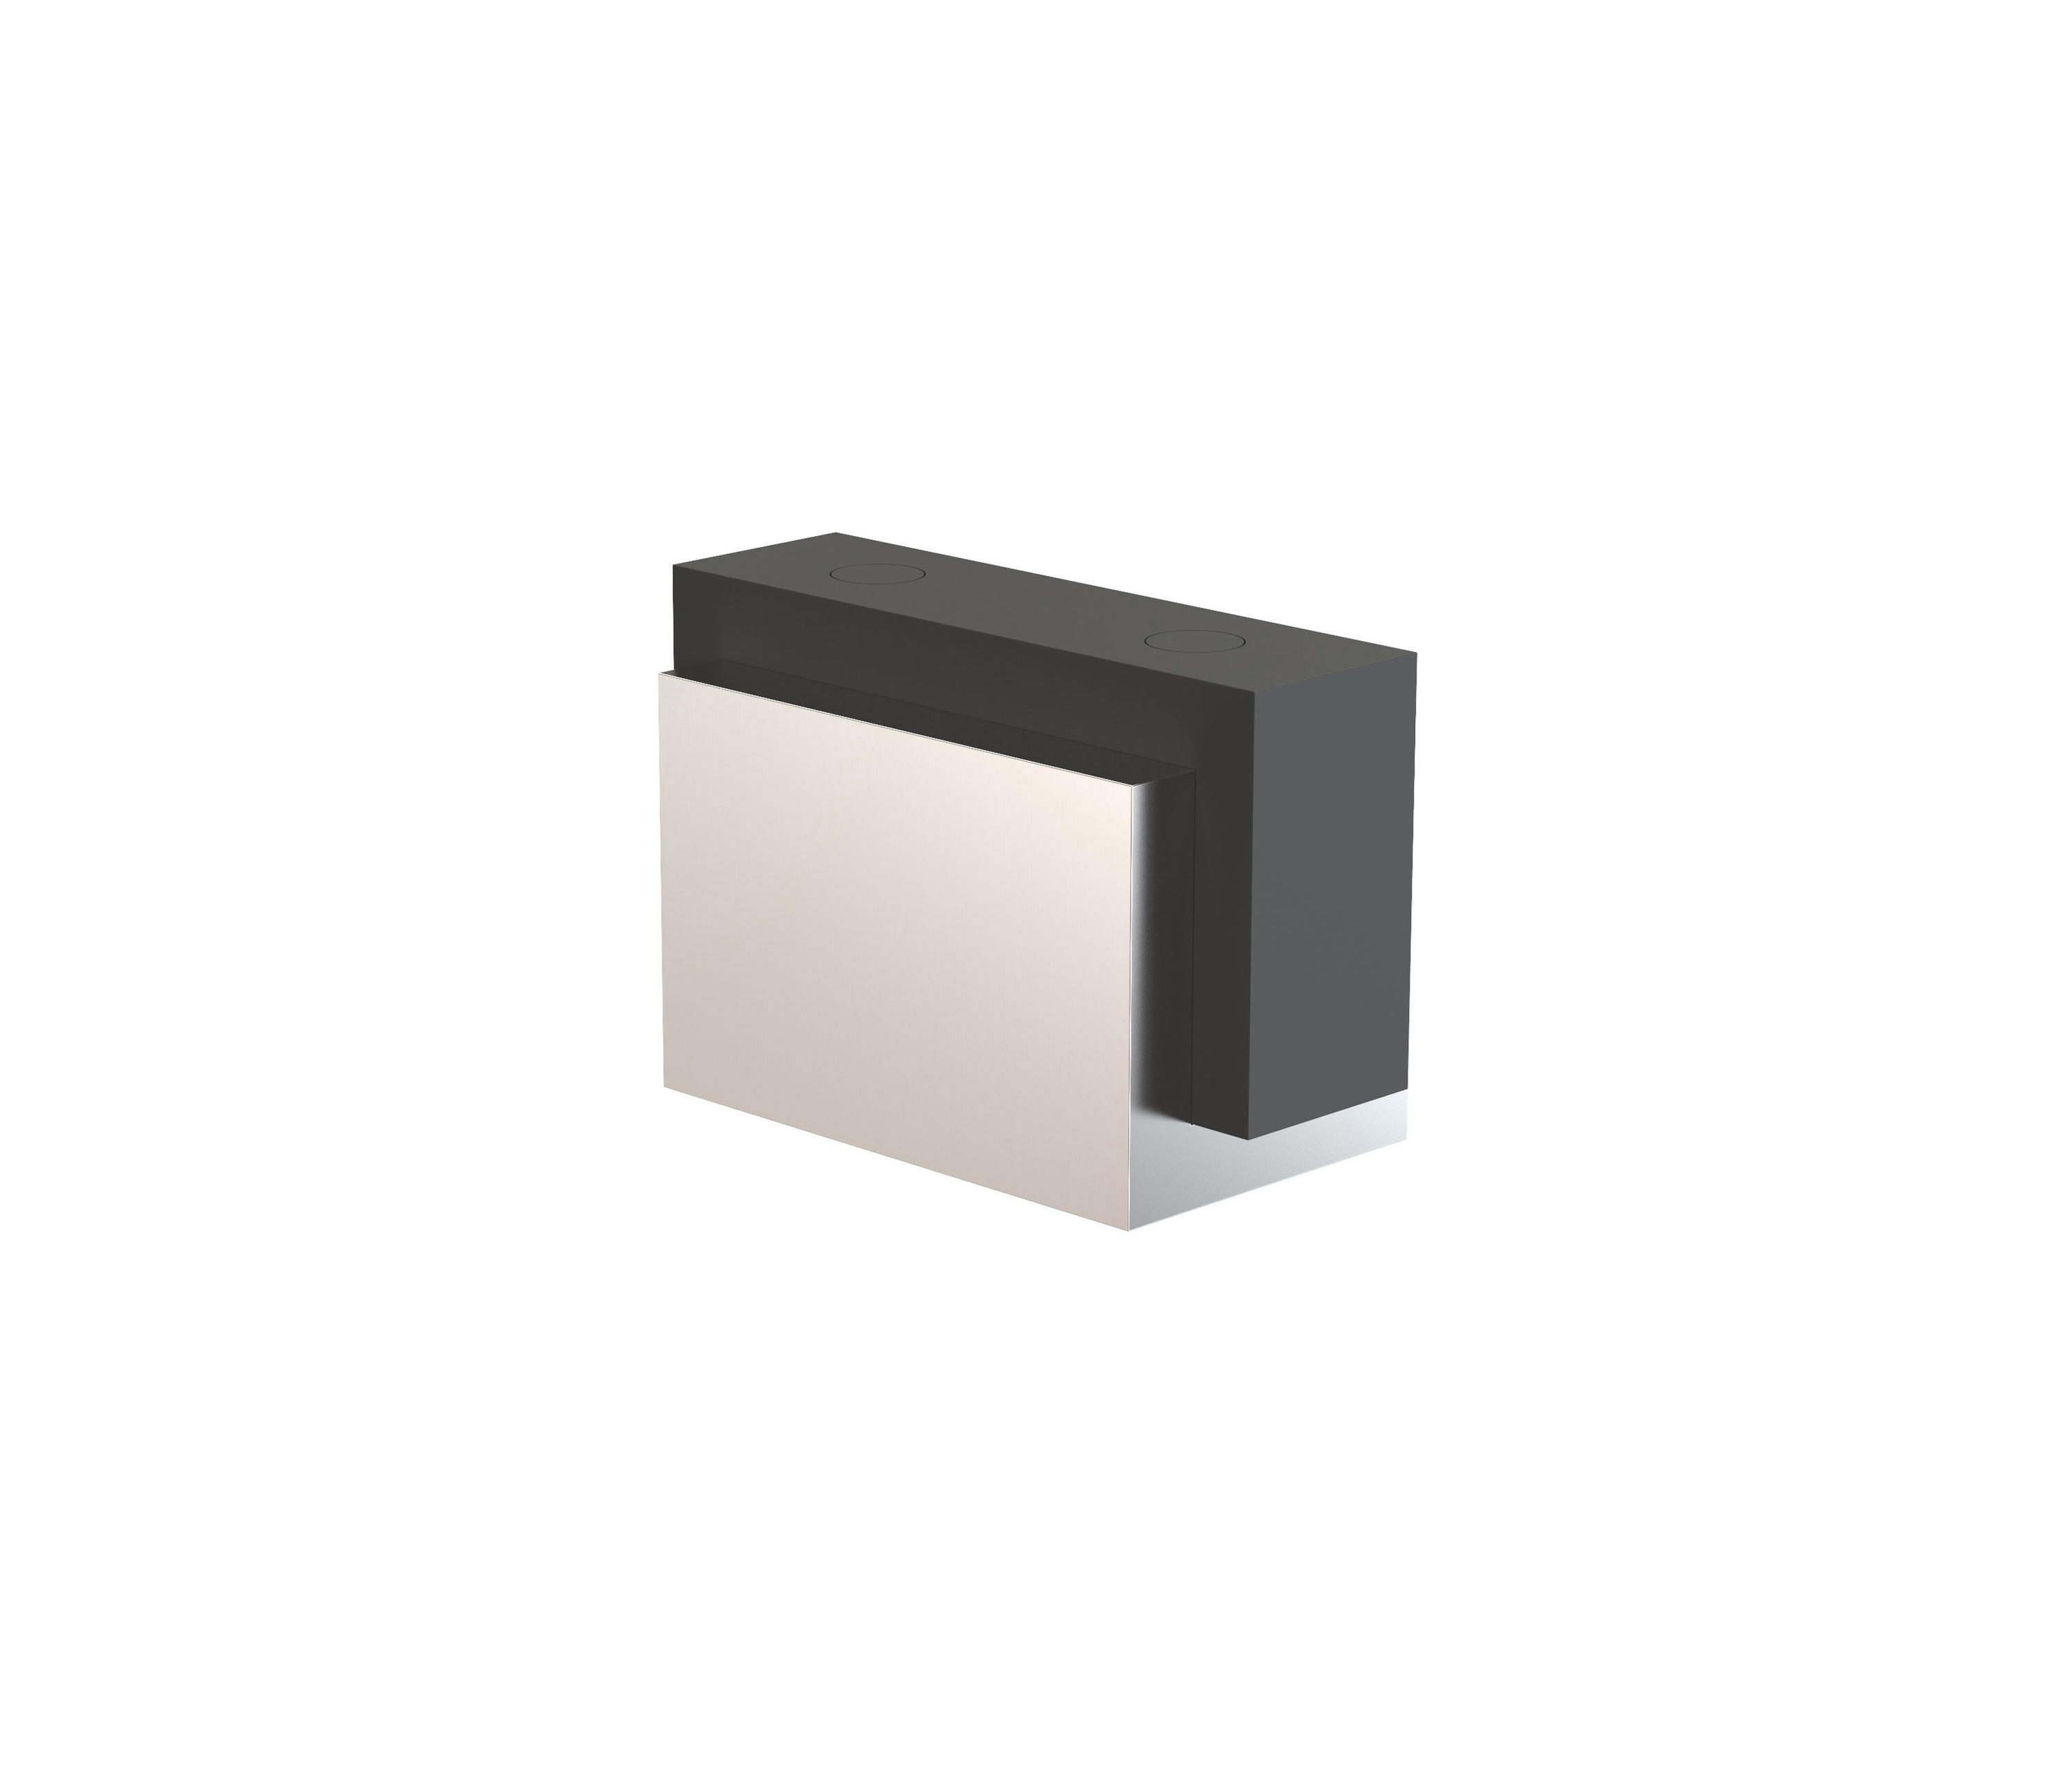 BH Door Stop 5001 by Frost | Door stops  sc 1 st  Architonic & BH DOOR STOP 5001 - Door stops from Frost | Architonic